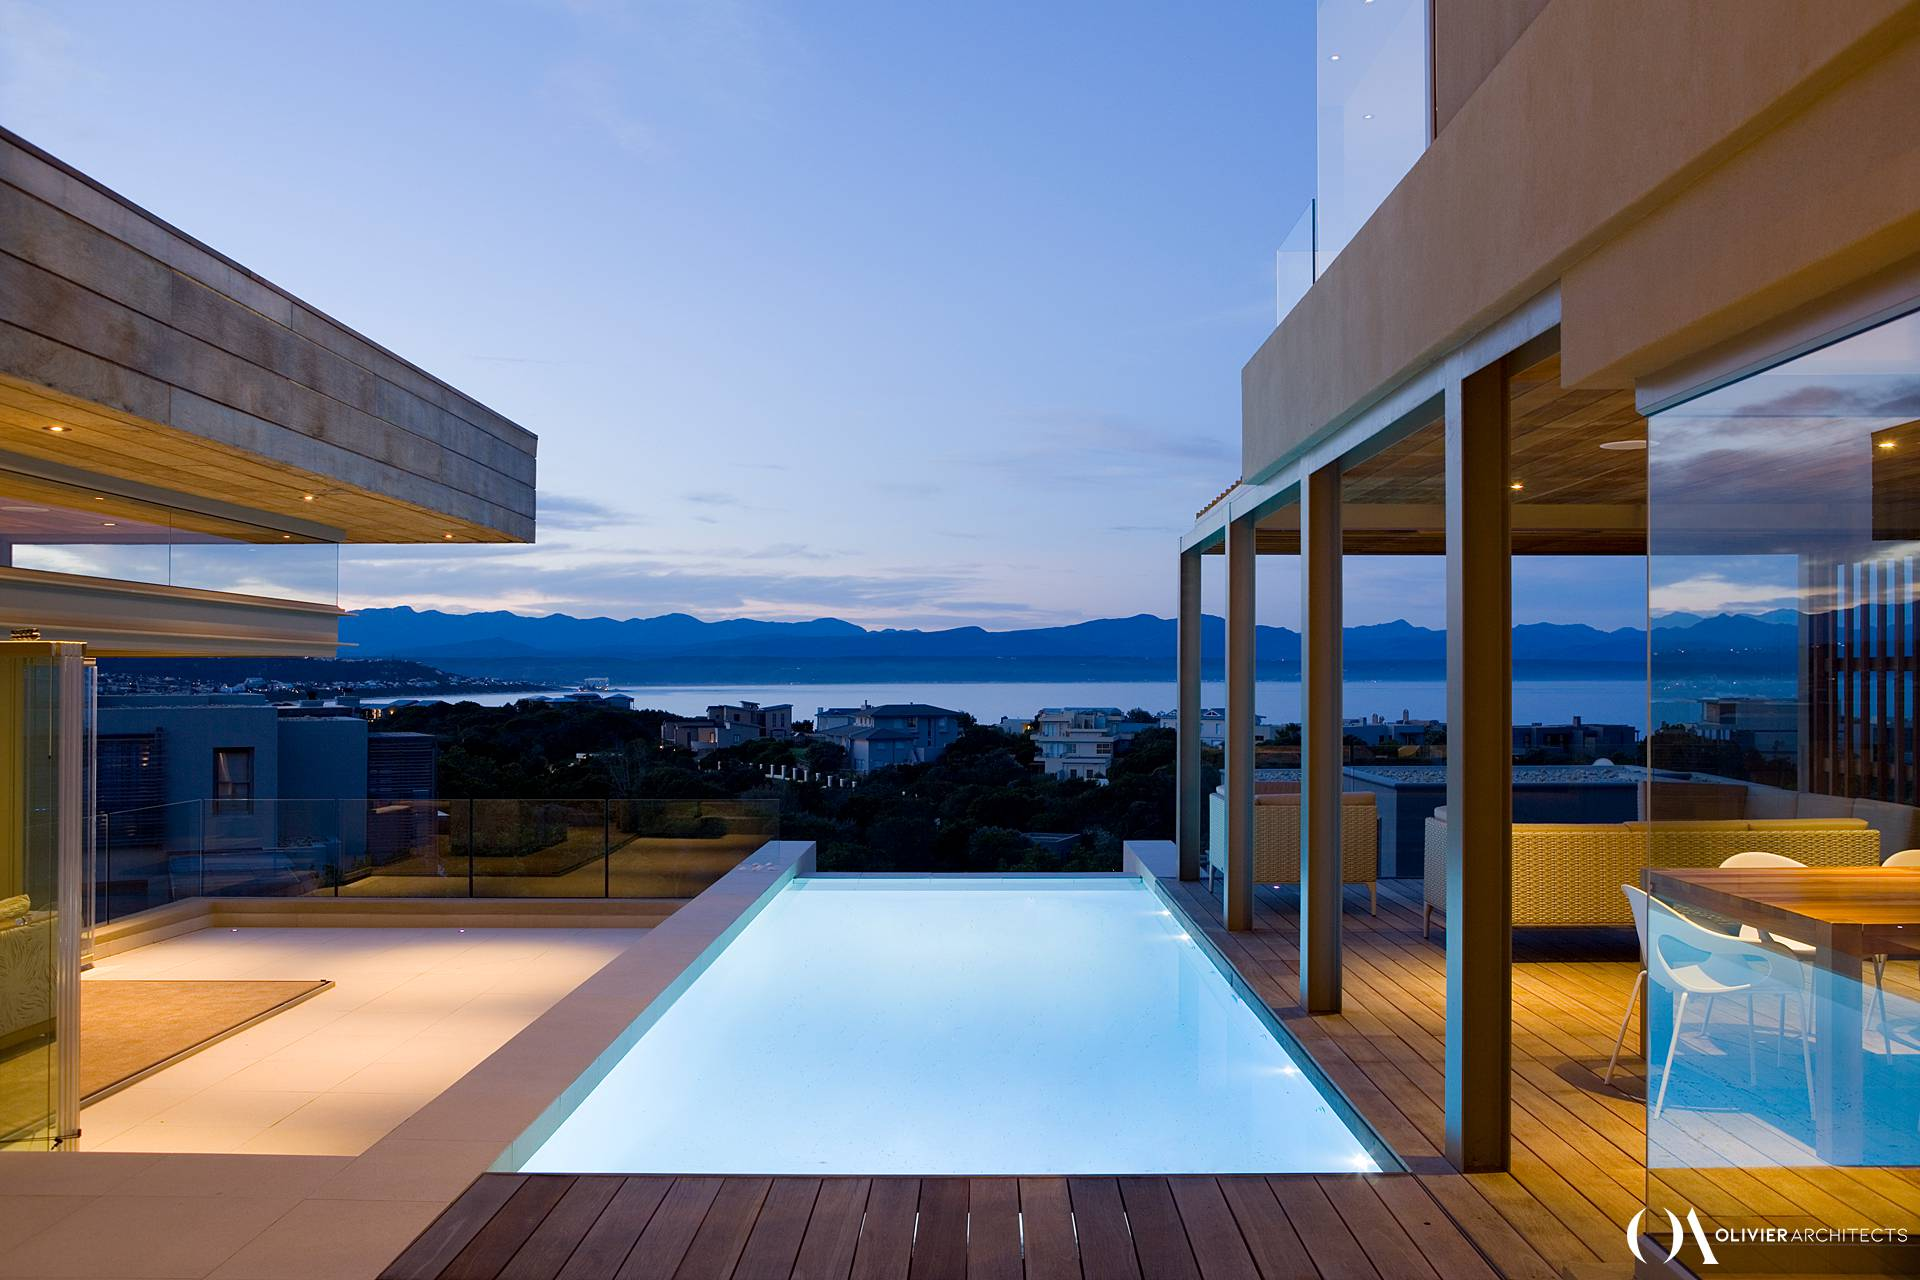 Plettenberg Bay Beach House